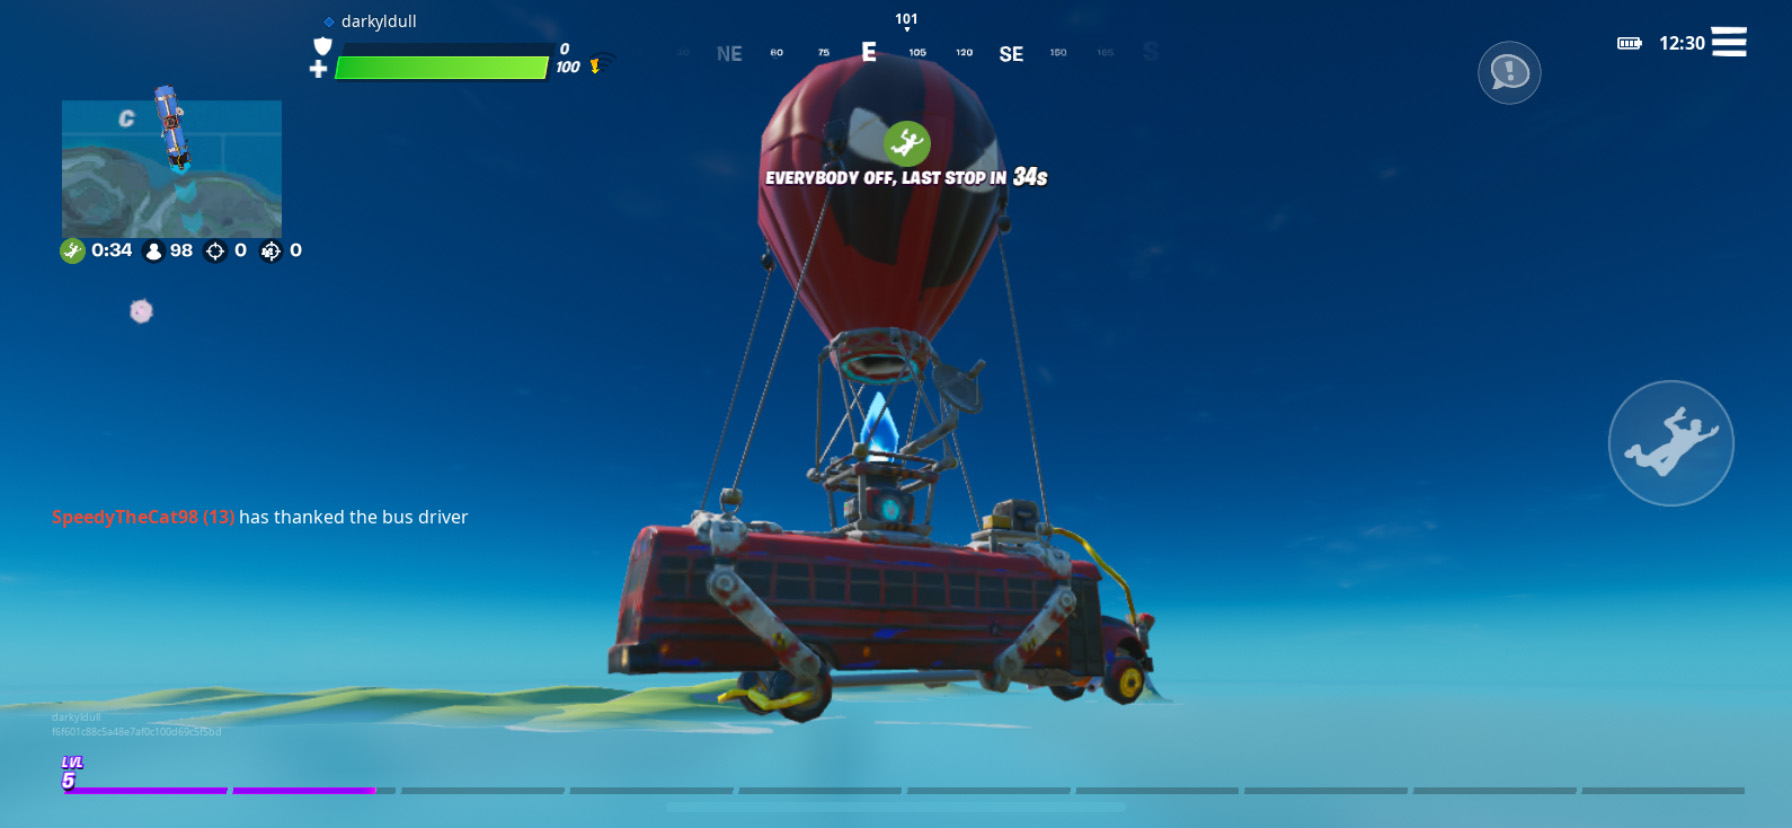 Fortnite Mobile for Android - Tips and Tricks for Staying Alive and Outplaying Your Enemies